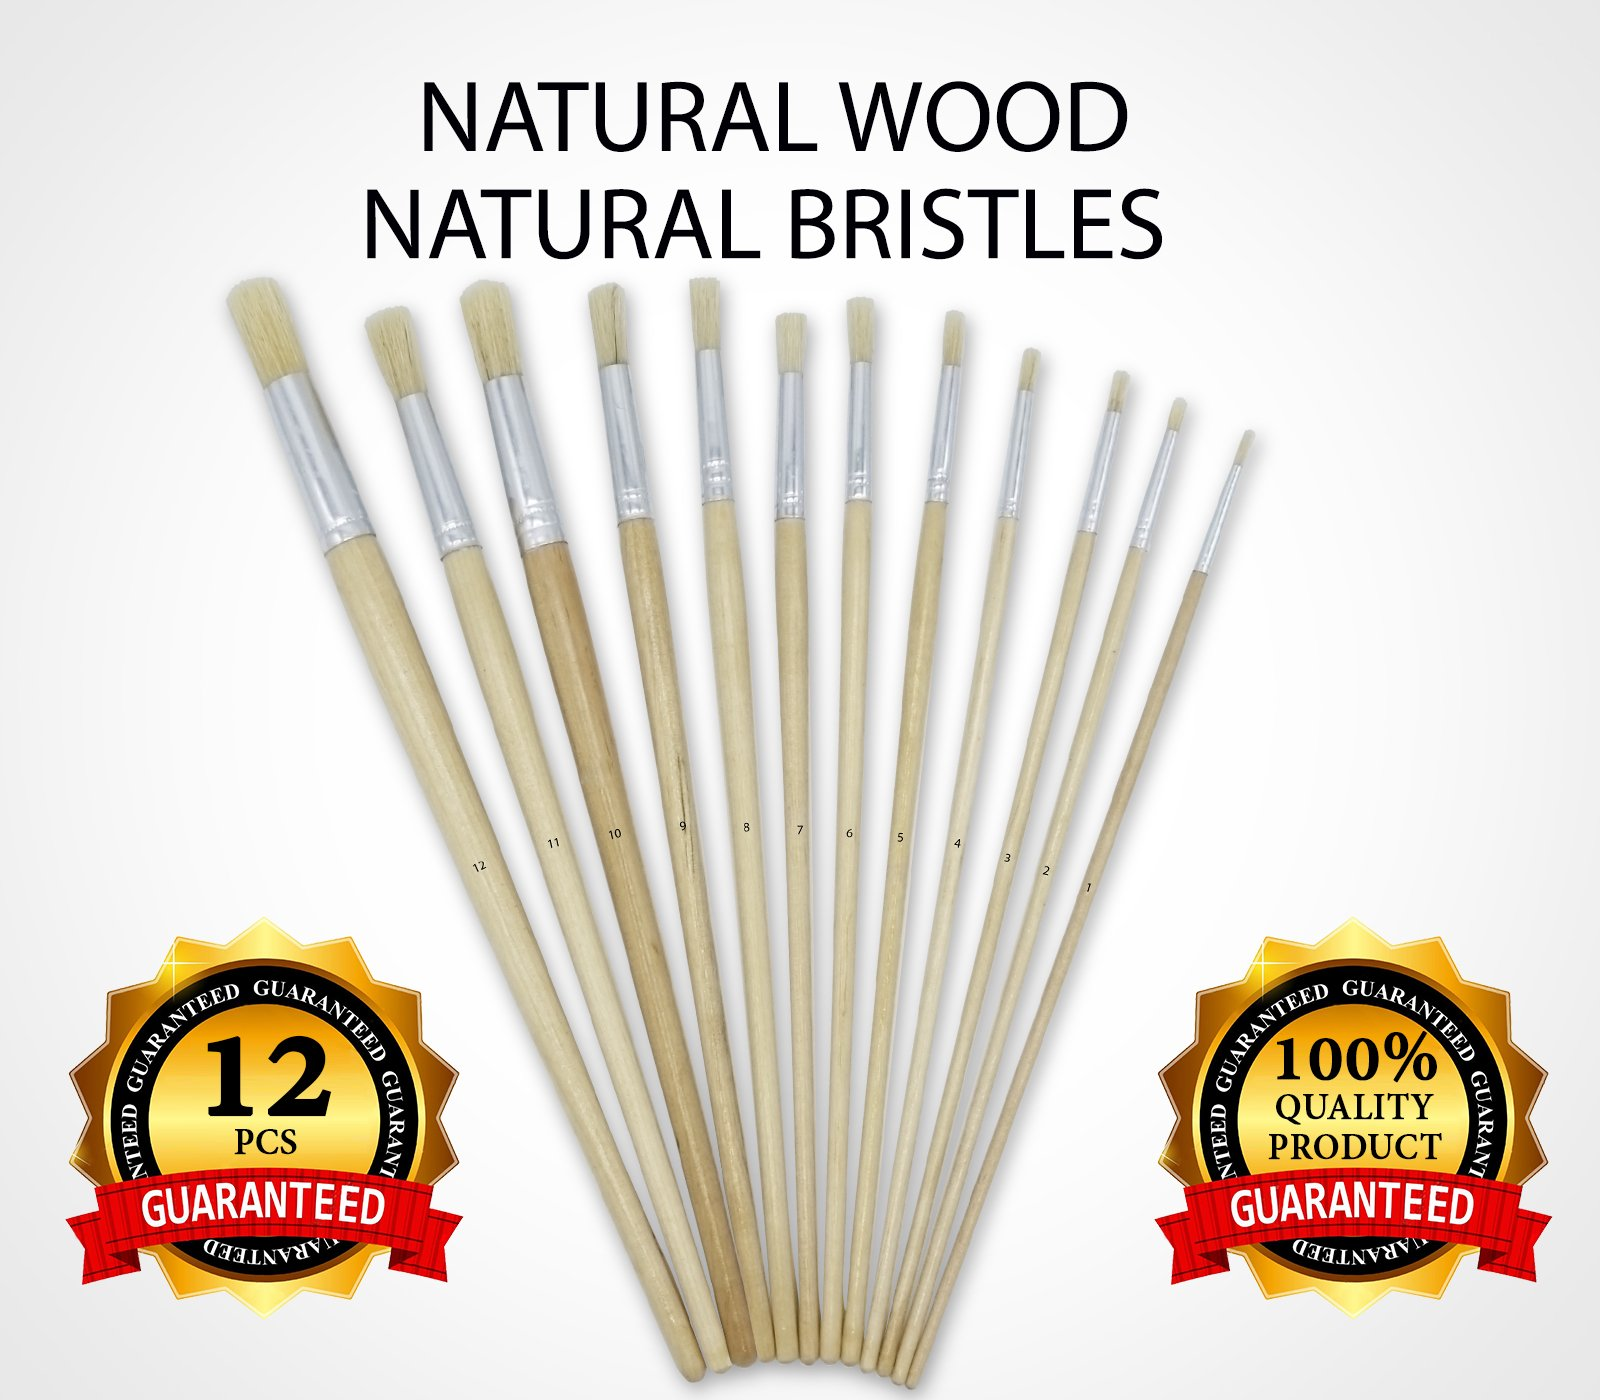 Artist Paint Brushes - Paint Brush Set - 12 pcs Round Paint Brush Art for Oil Painting and Acrylic Painting by Crafts, Long Handle, Natural Brush Paint. Great for Student and Artist